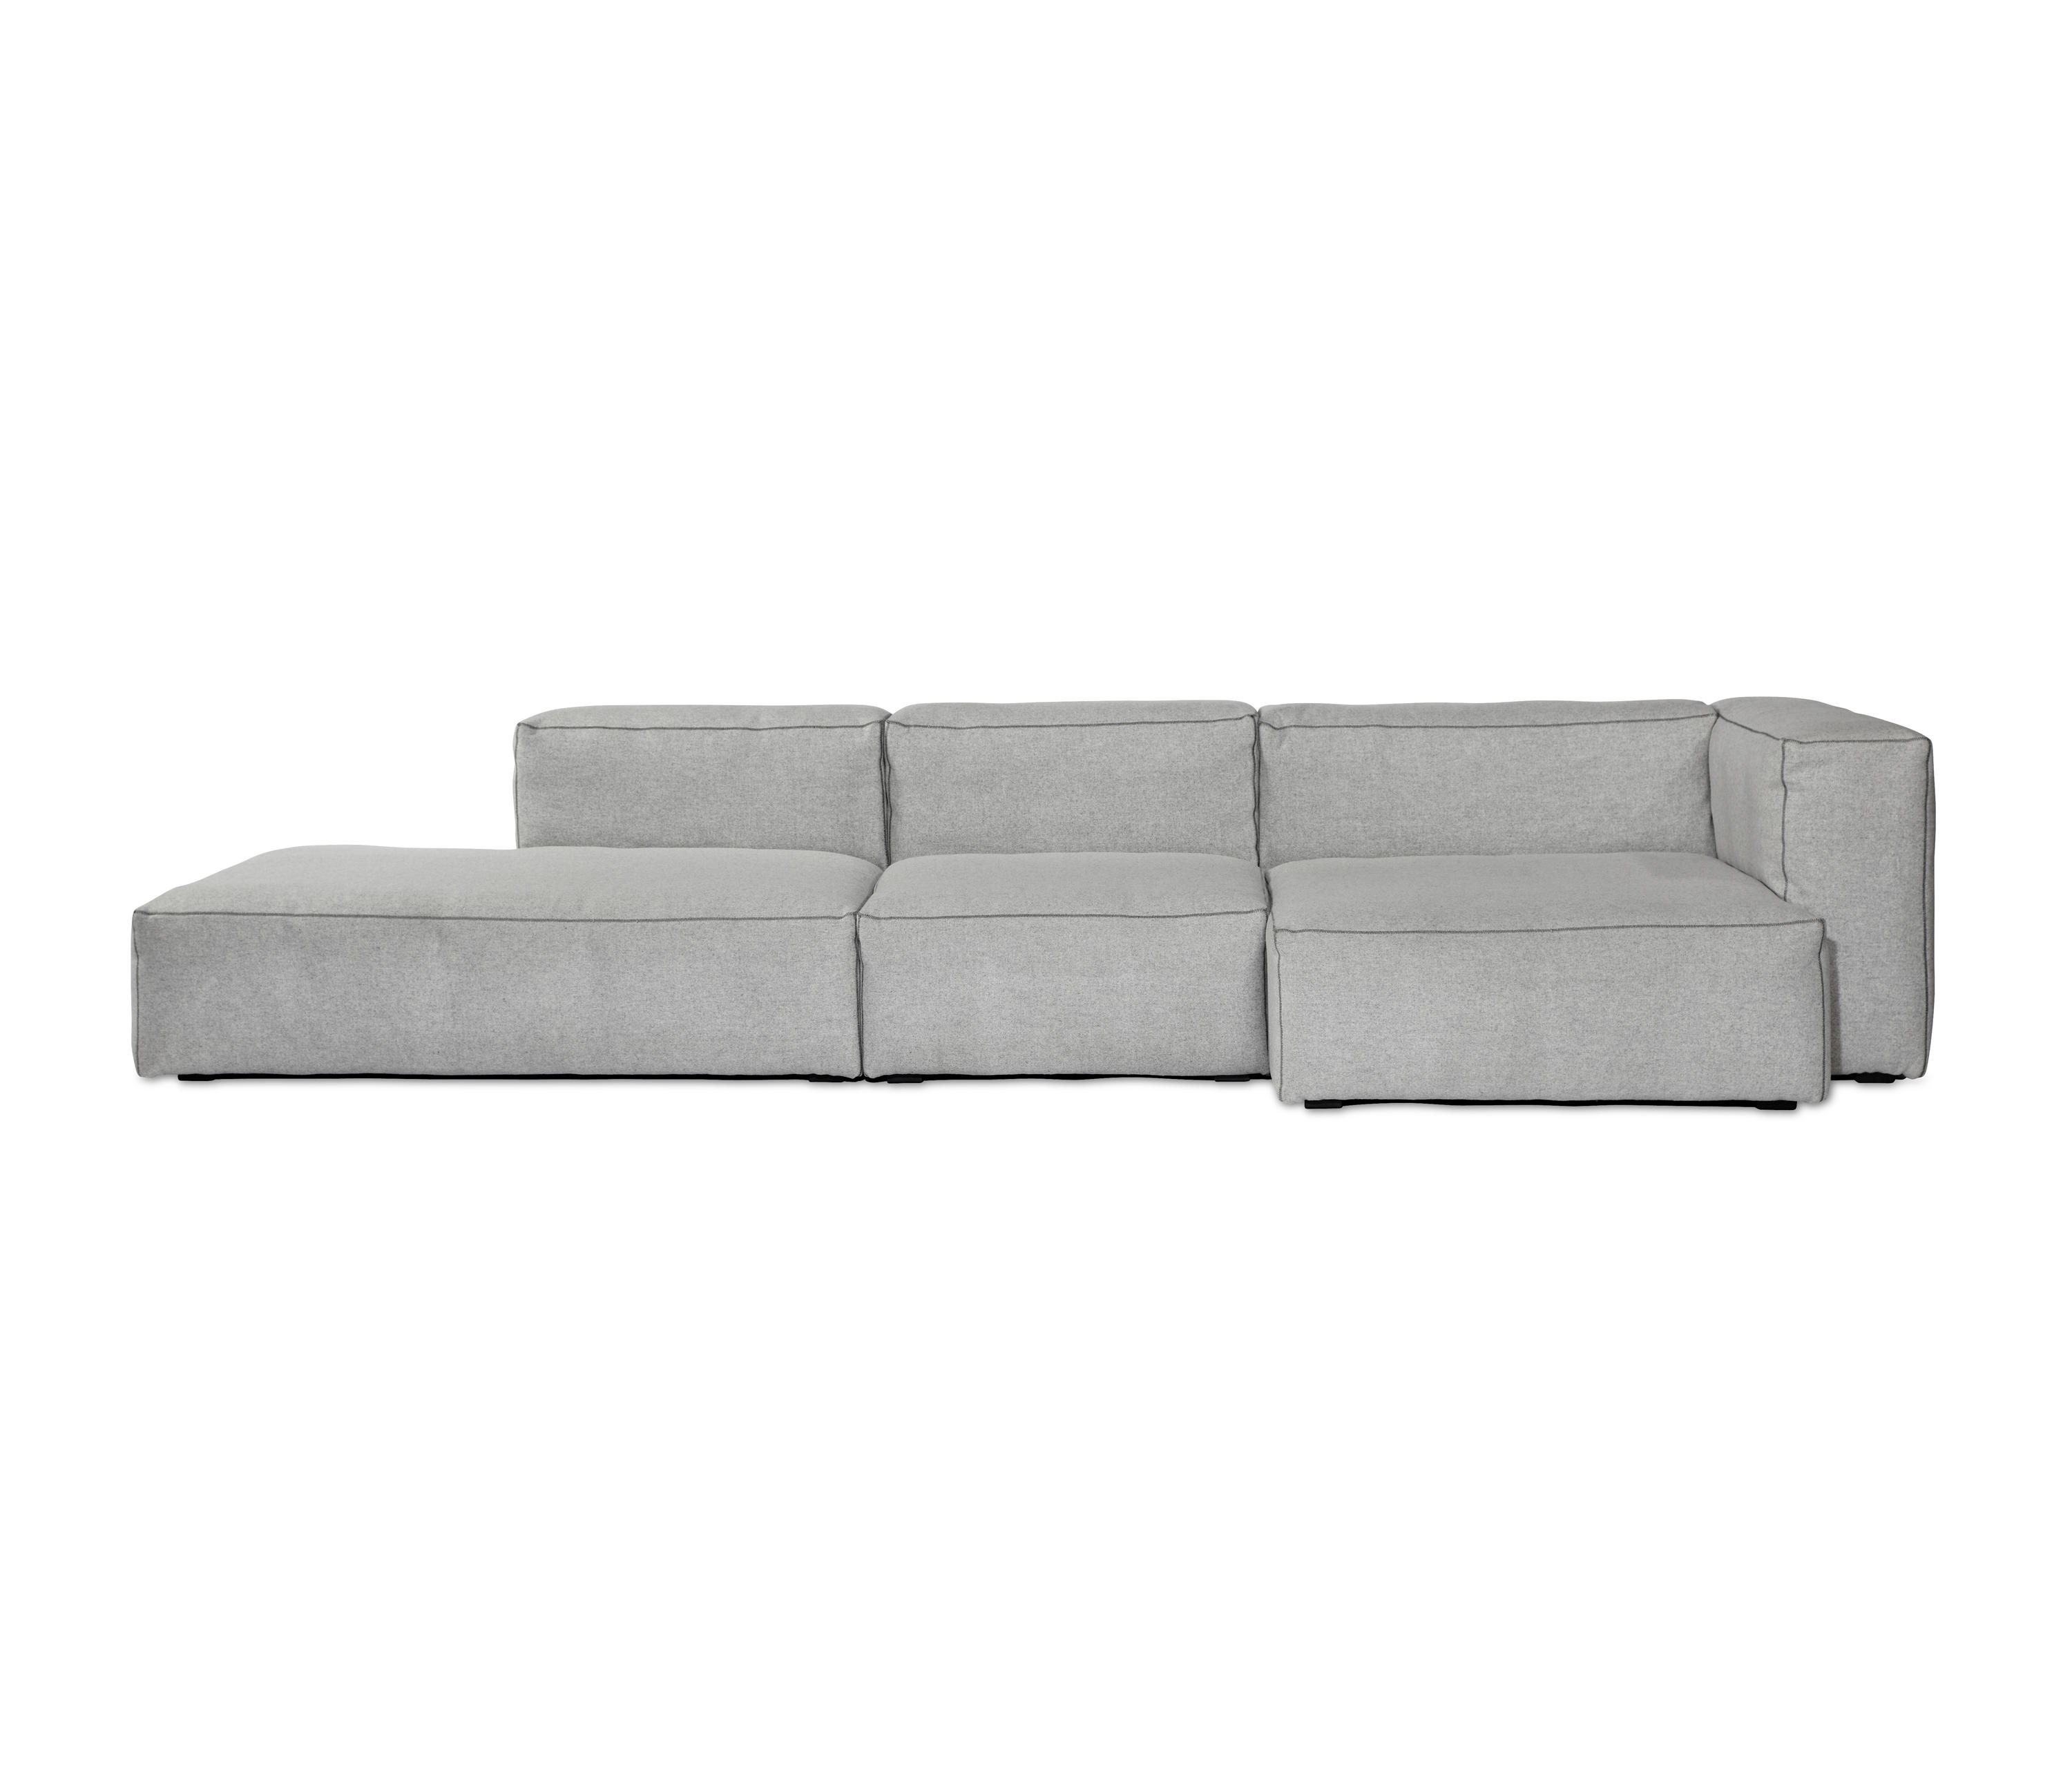 mags soft sofa sofas from hay architonic. Black Bedroom Furniture Sets. Home Design Ideas